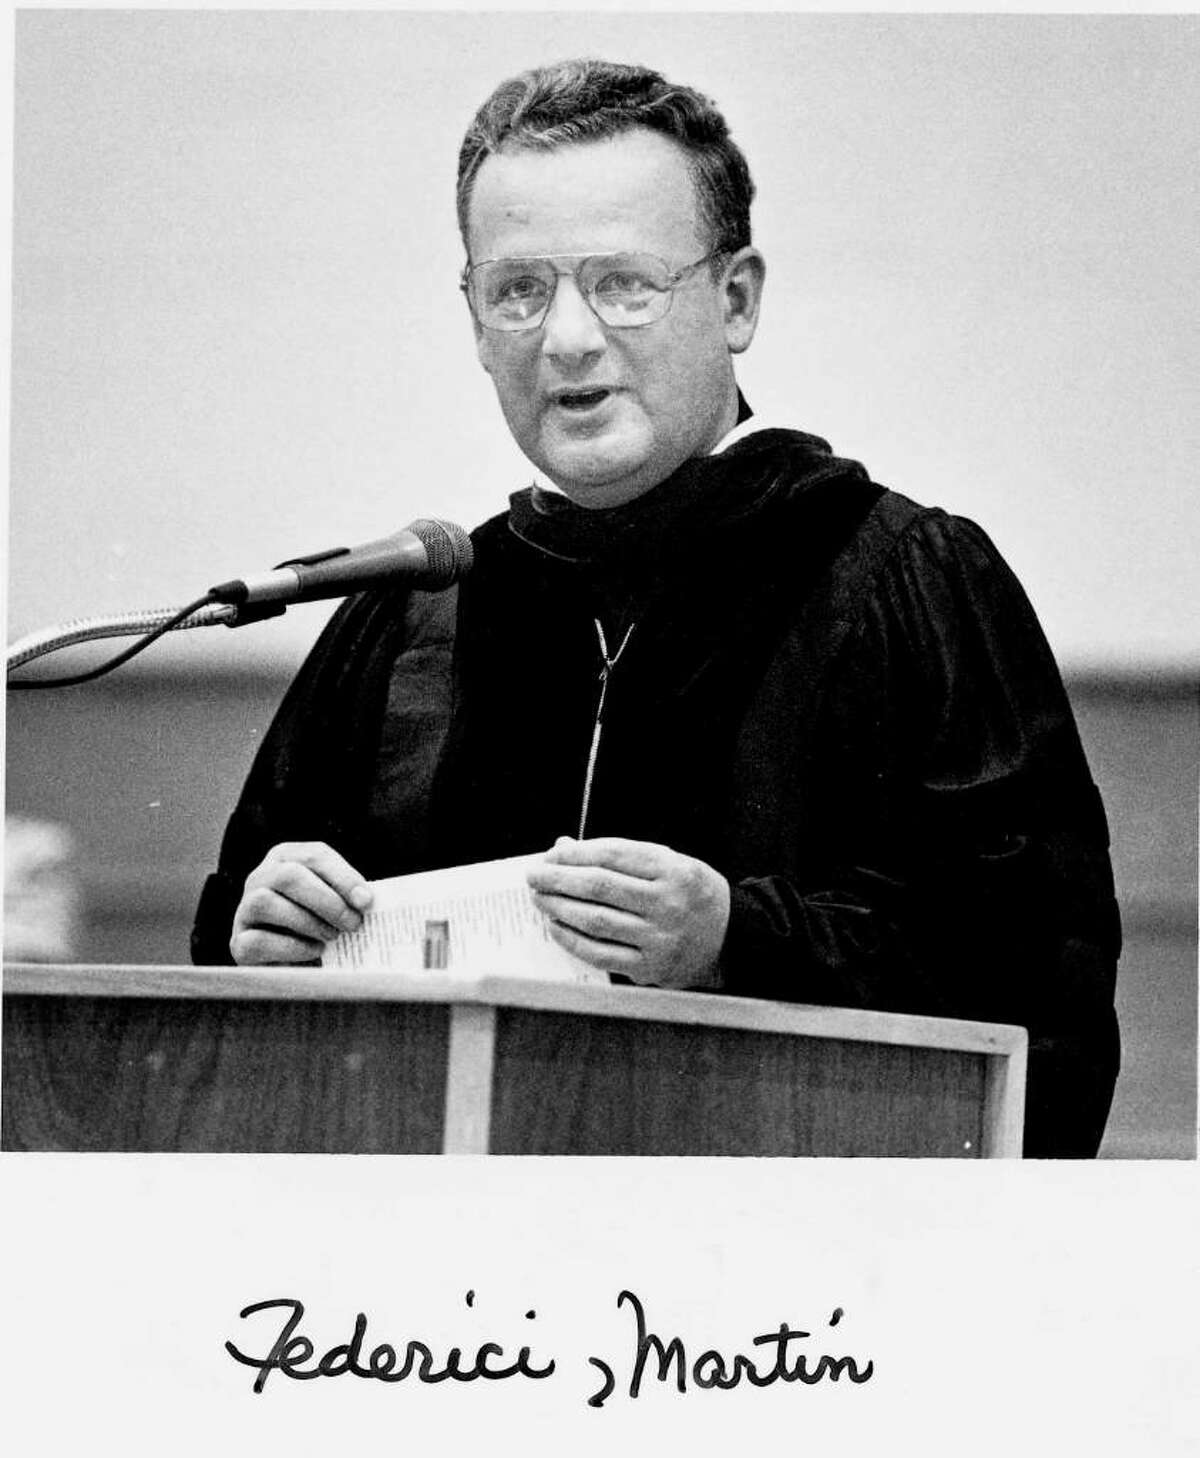 Father Martin Federici accused in the child molestation lawsuit against the Diocese of Bridgeport. The picture was taken on 6/24/1992 as he performed the invocation and benediction at the Brien McMahon HS commencement exercises.